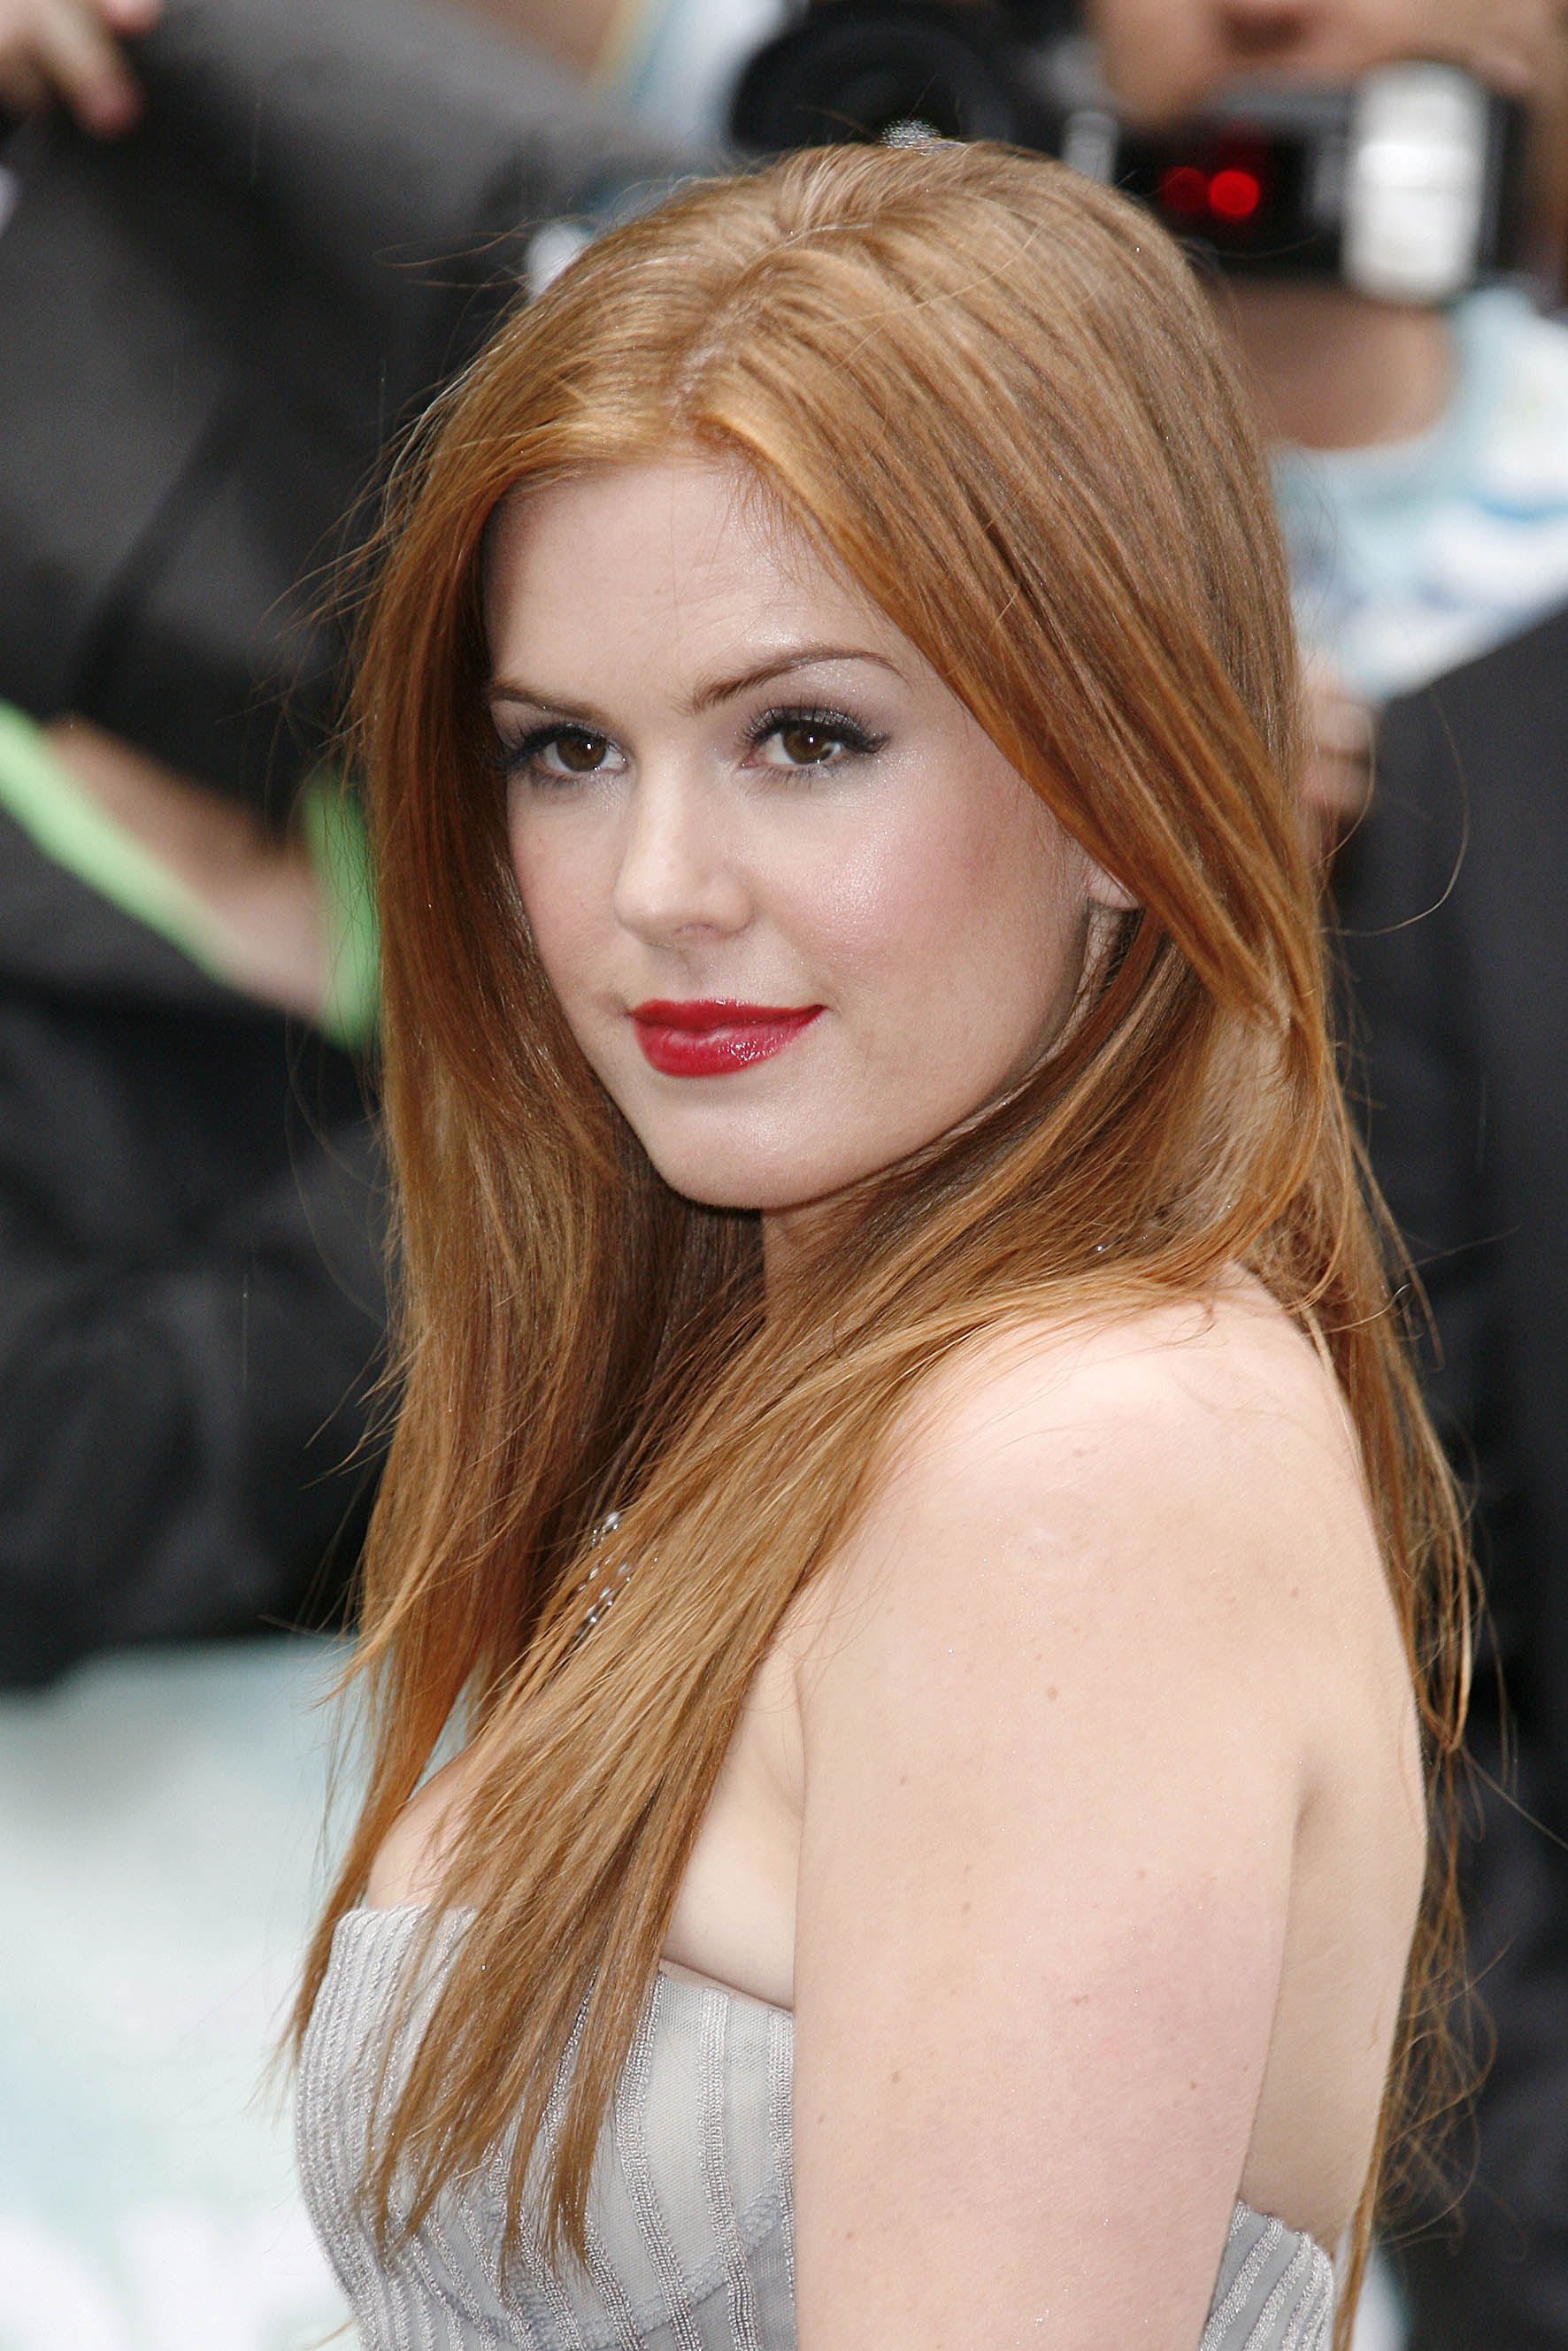 IslaFisher_Bruno-UK-Film-Premiere_Vettri.Net-06